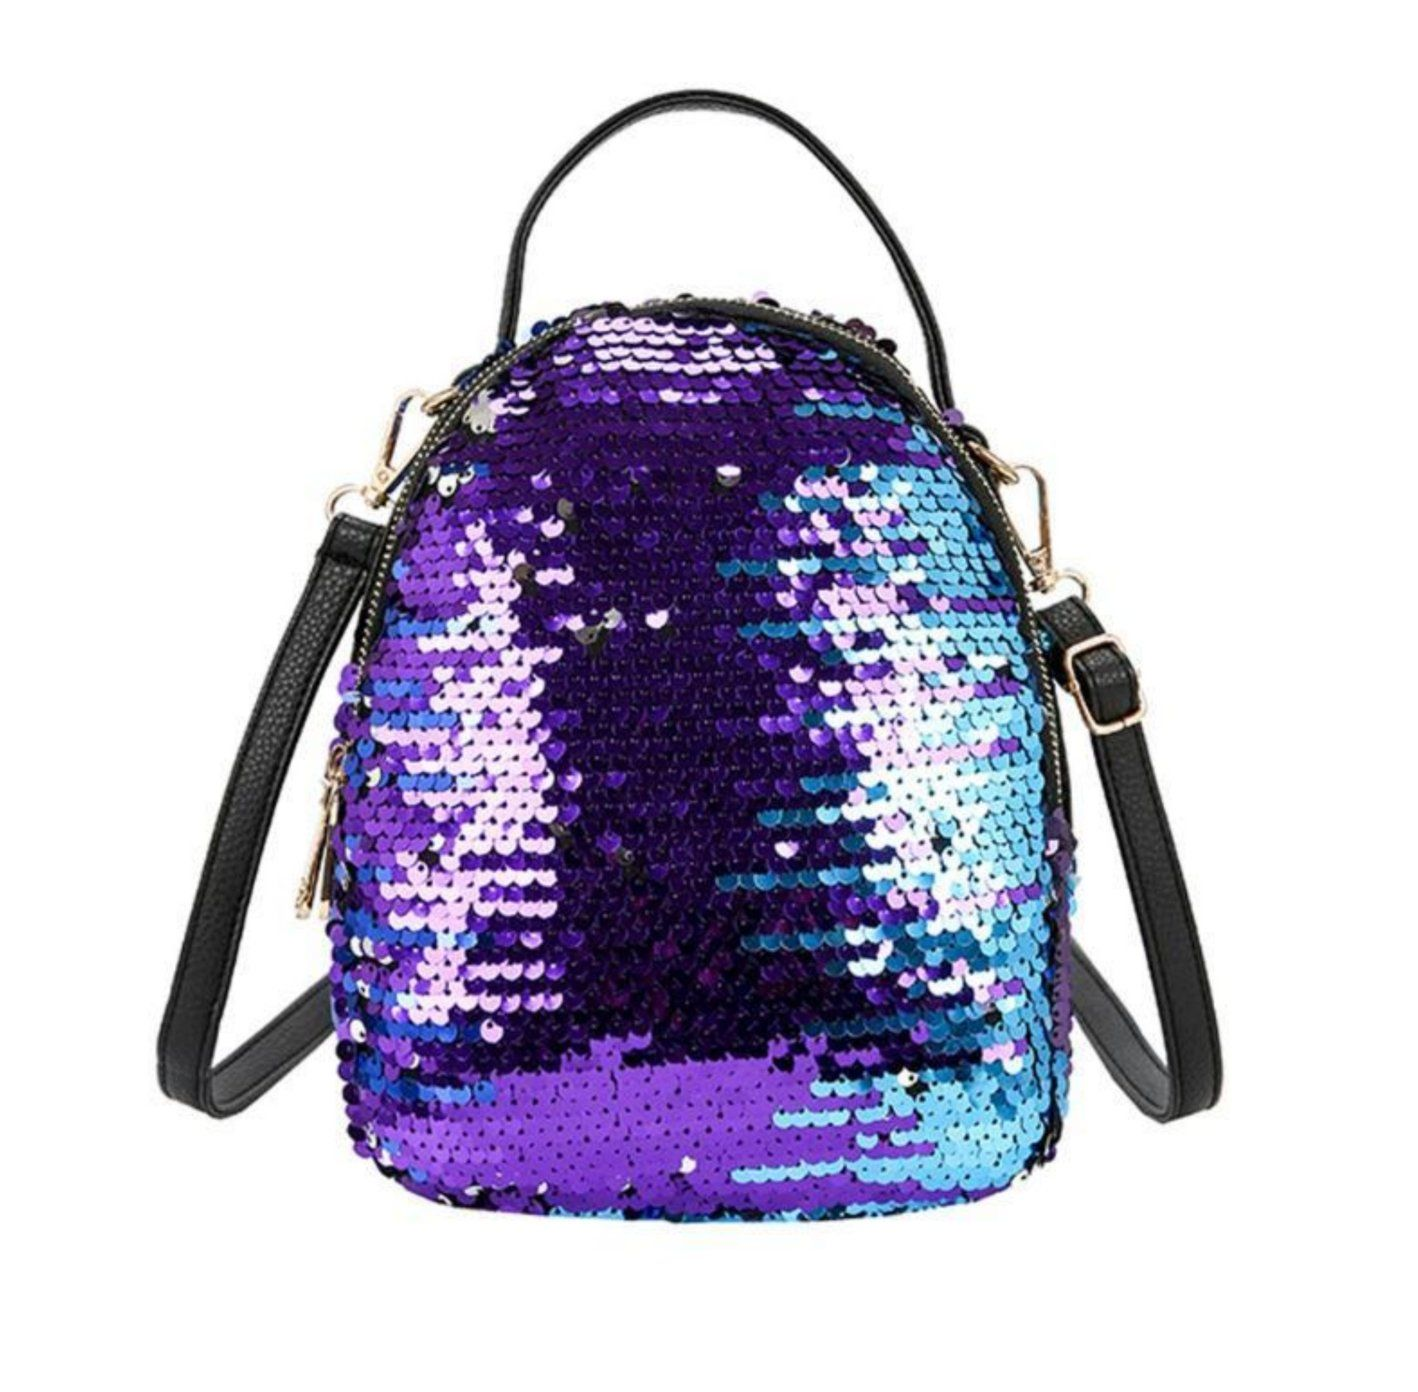 27eb5ccc239 Color Changing Sequins Mini Backpack | Products | Backpacks, Sequin ...